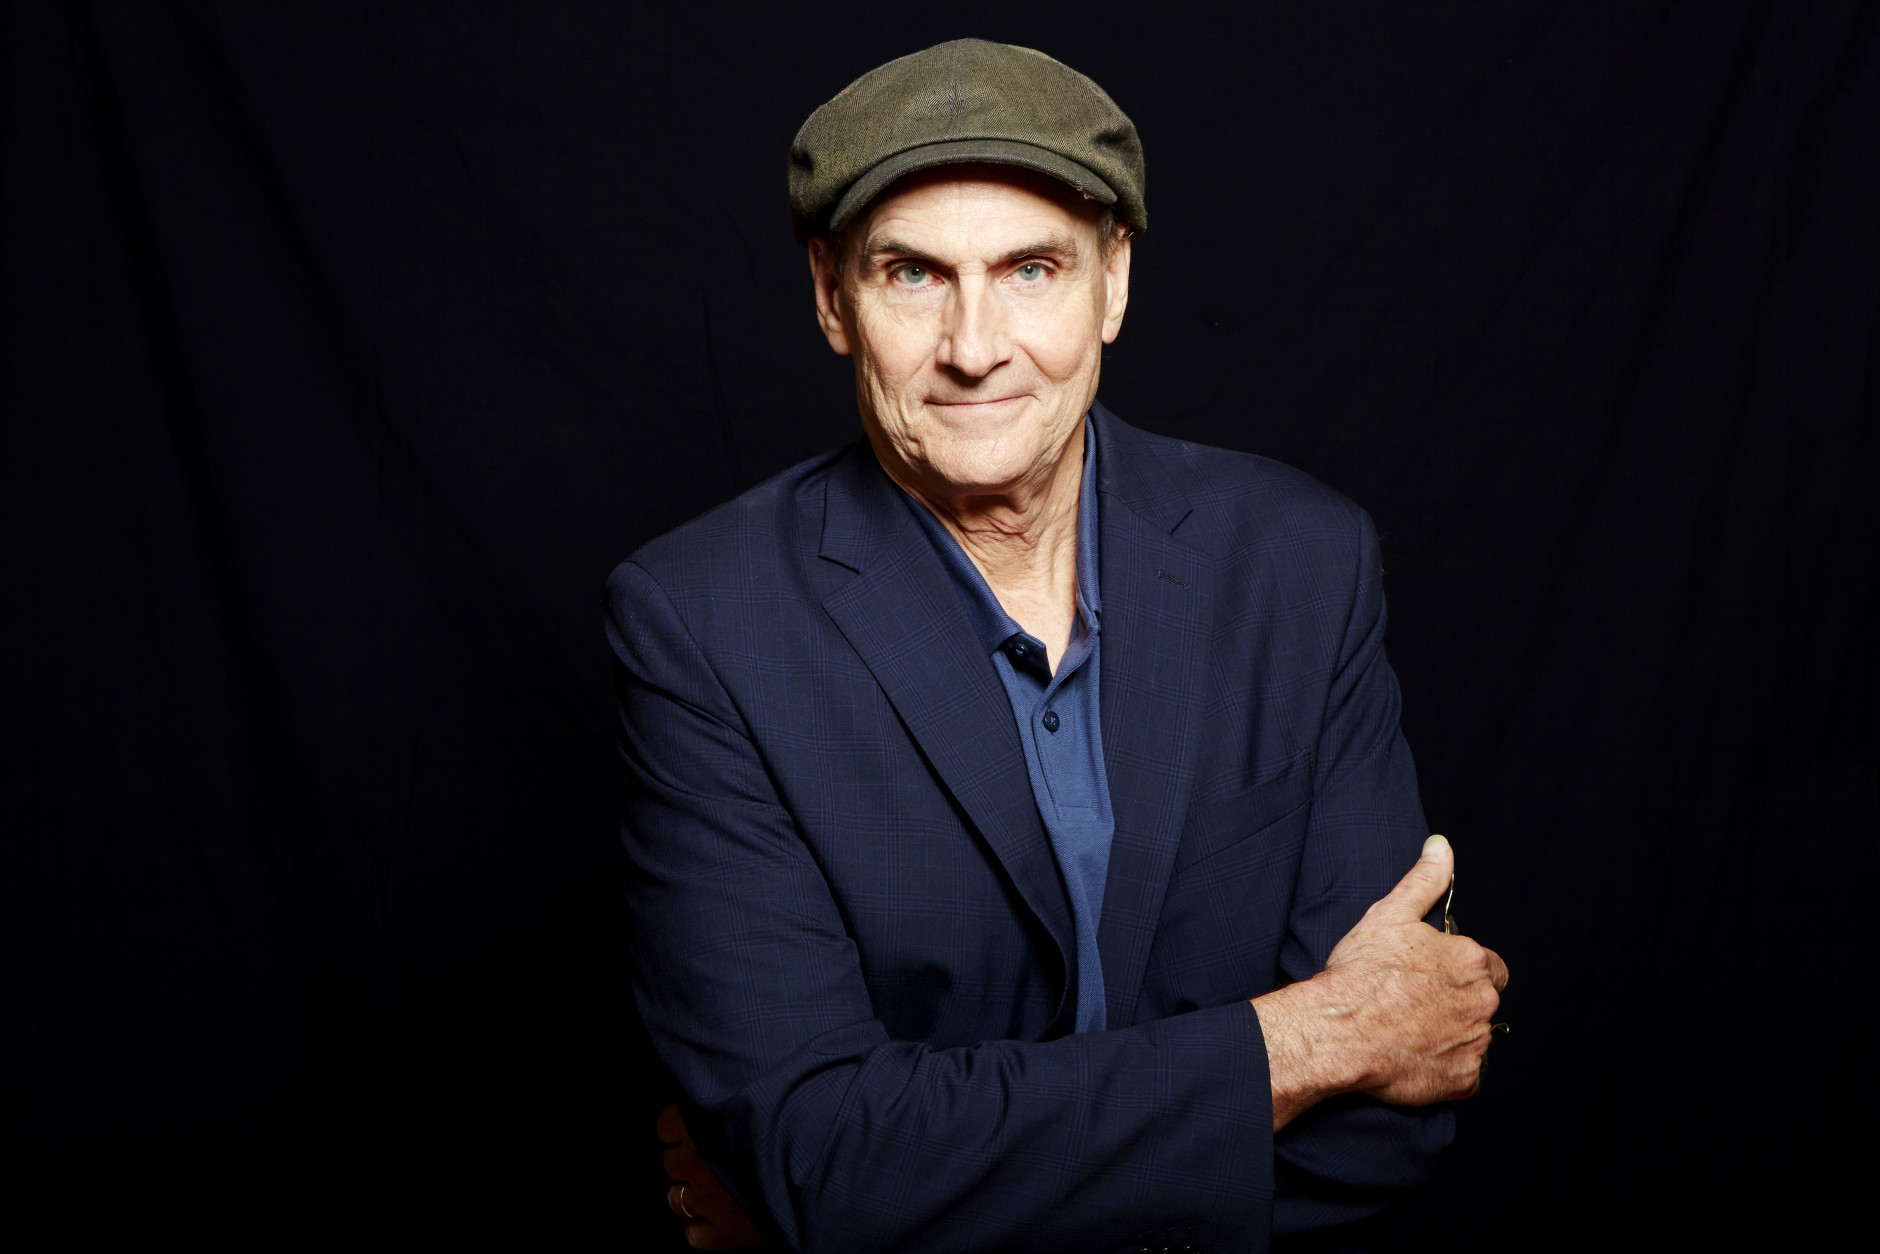 FILE - In this May 13, 2015 file photo, singer-songwriter James Taylor poses for a portrait in New York. This year's Kennedy Center honorees include musicians who span genres including pop, rock, gospel, blues, folk and classical _ and an actor known for his extraordinary range. The John F. Kennedy Center for the Performing Arts announced Thursday, June 23, 2016, that actor Al Pacino, rock band the Eagles, Argentine pianist Martha Argerich, gospel and blues singer Mavis Staples and singer-songwriter James Taylor will be honored for influencing American culture through the arts. (Photo by Dan Hallman/Invision/AP, File)